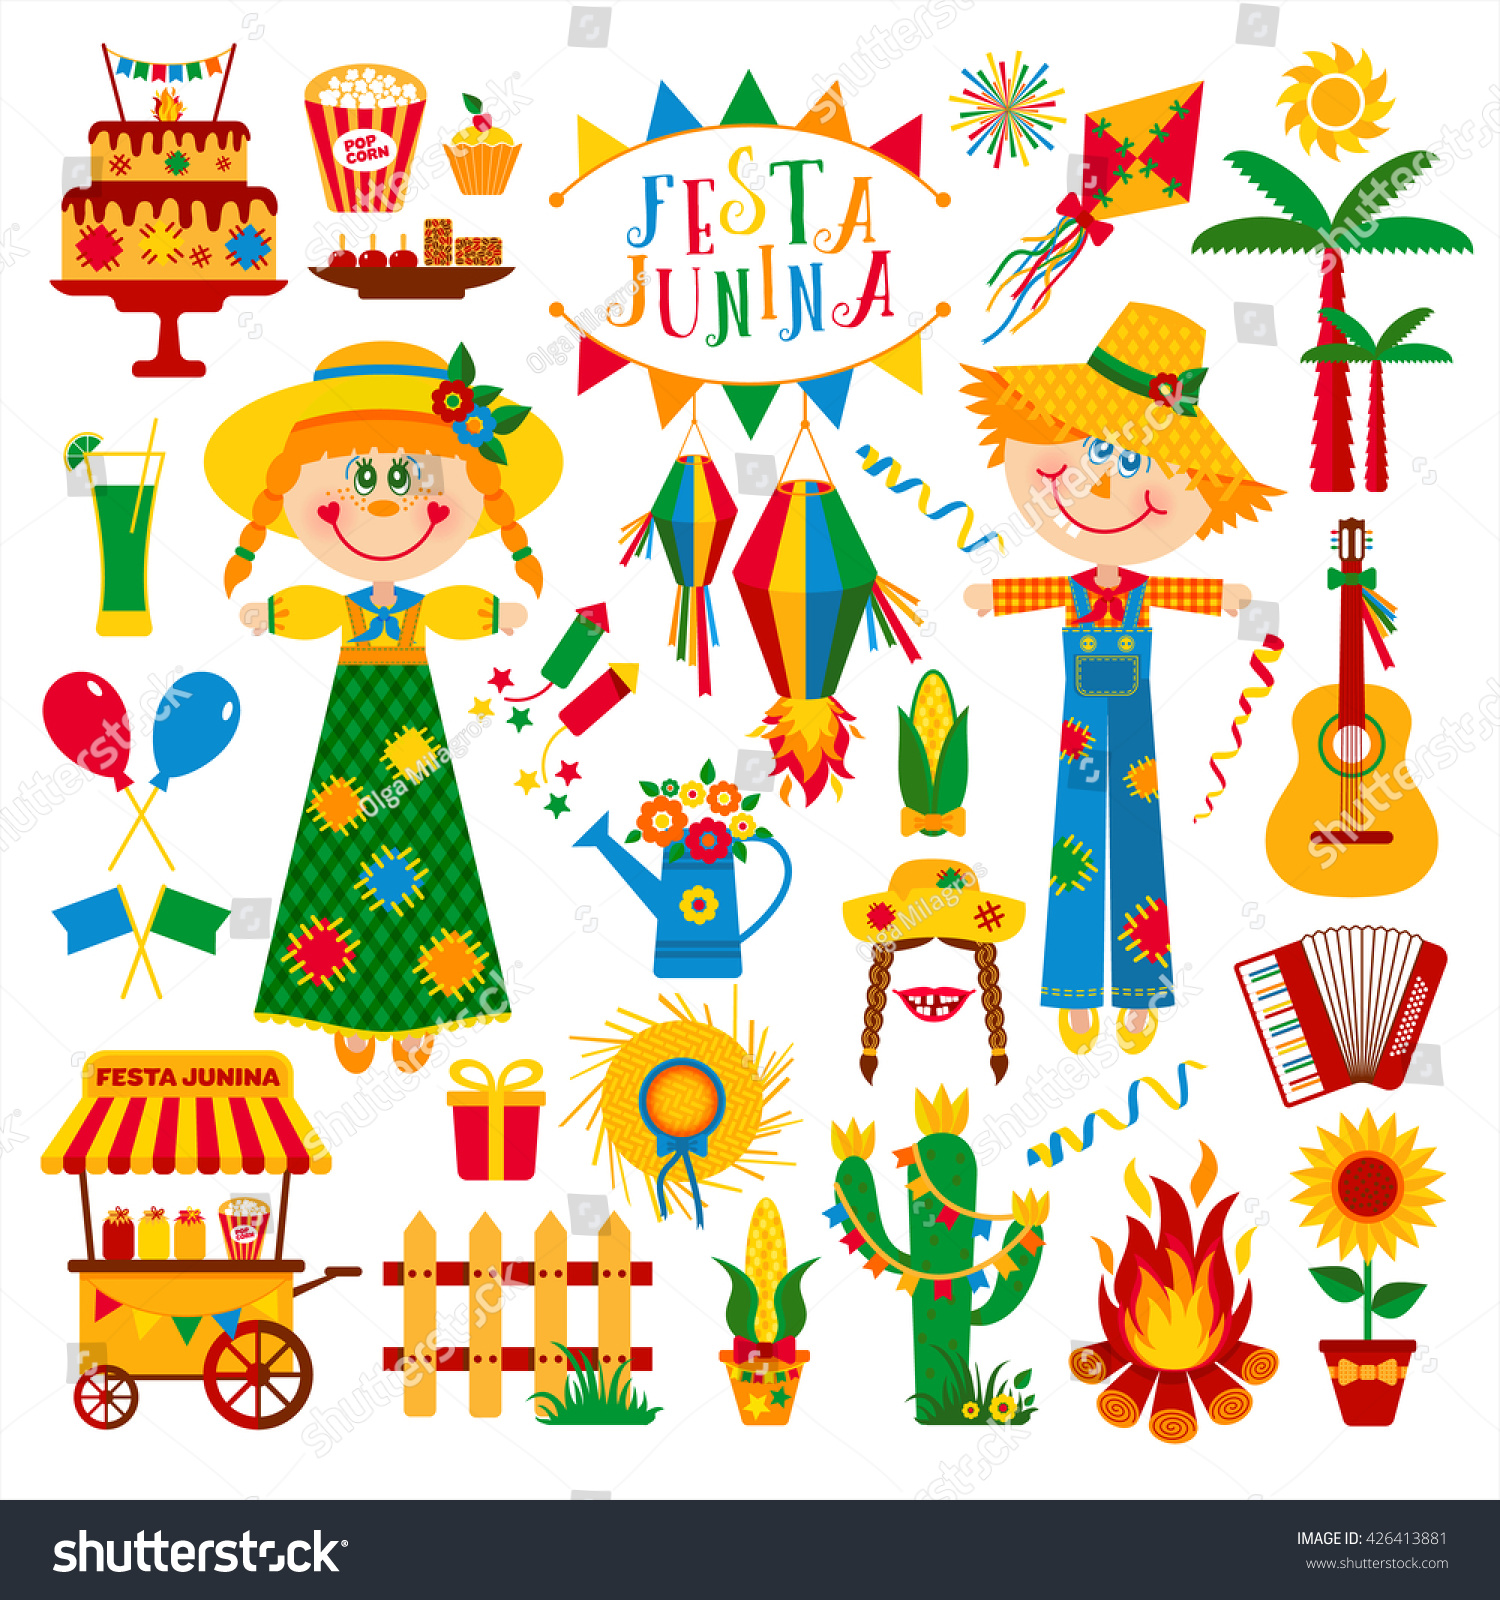 Festa Junina Village Festival Latin America Stock Vector